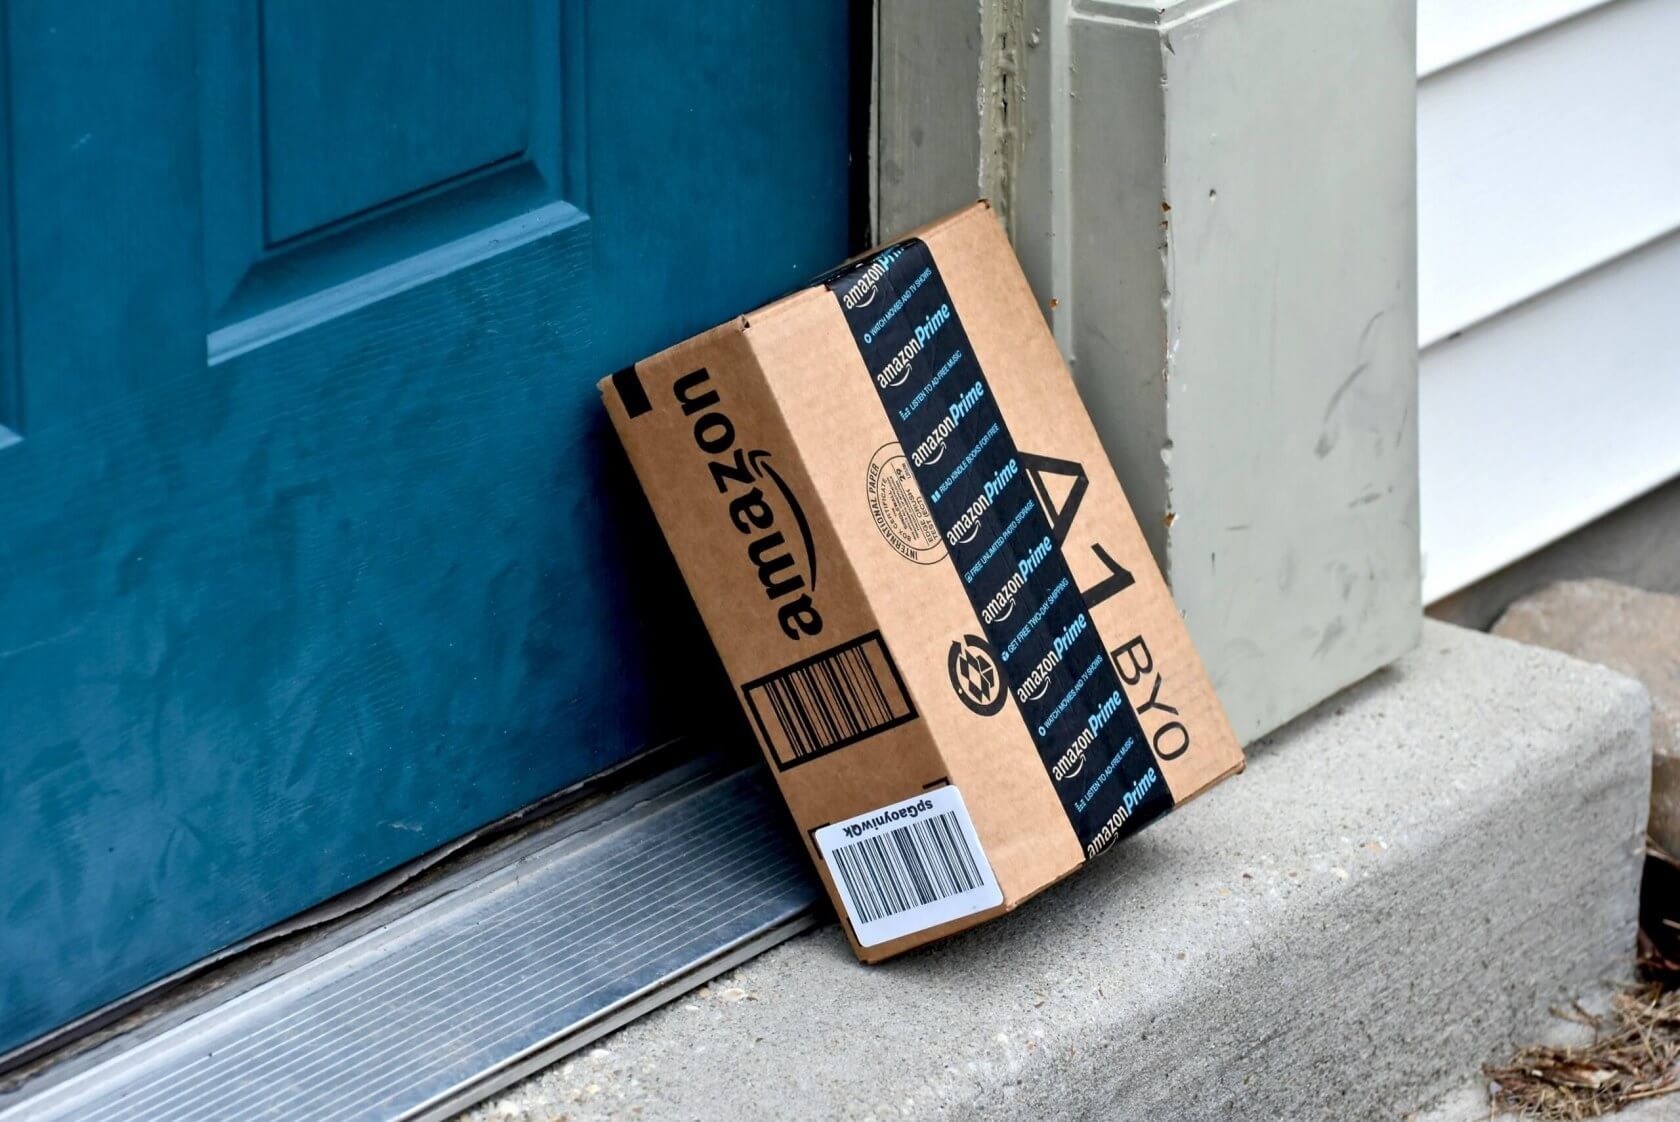 PC builders face month-long shipping delays from Amazon, other retailers remain unaffected